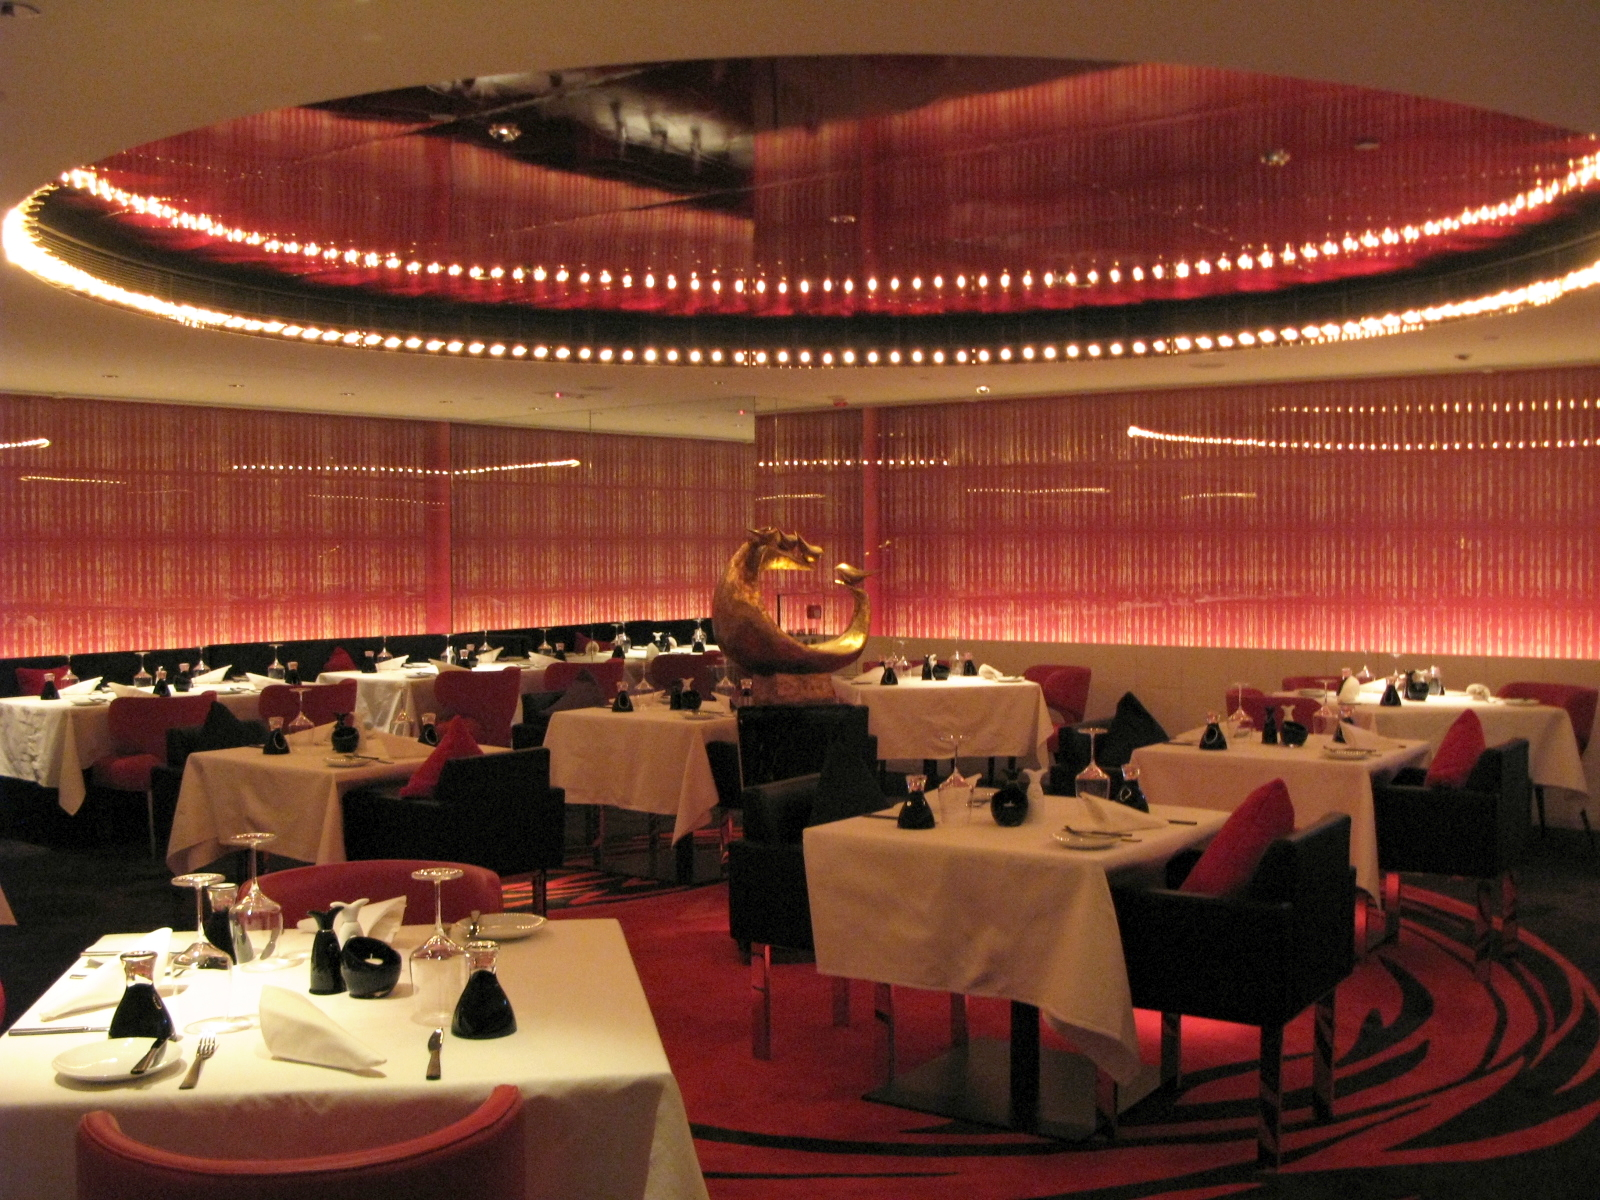 Description W Hotel Hong Kong Fire Restaurant Interior.jpg